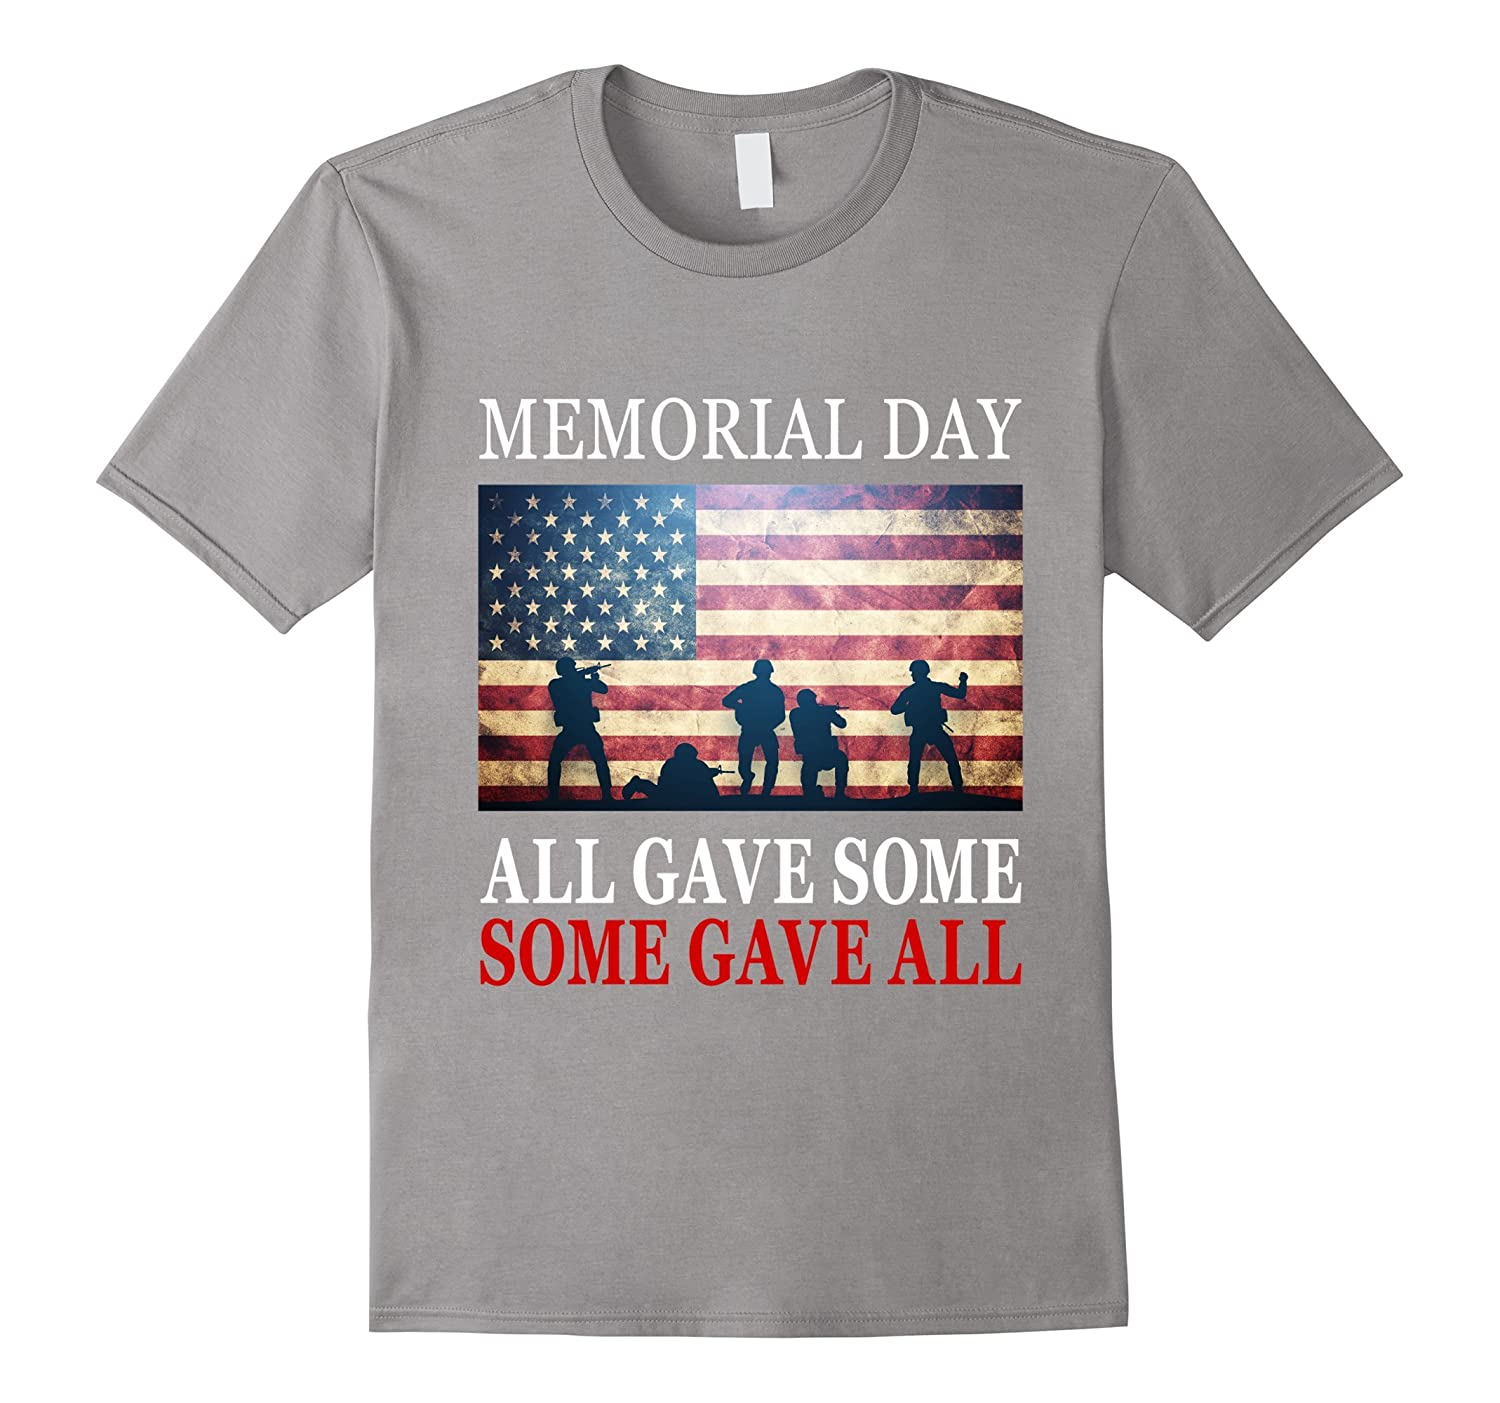 Some Gave All - All Gave Some Soldiers Memorial Day T-Shirt-Art